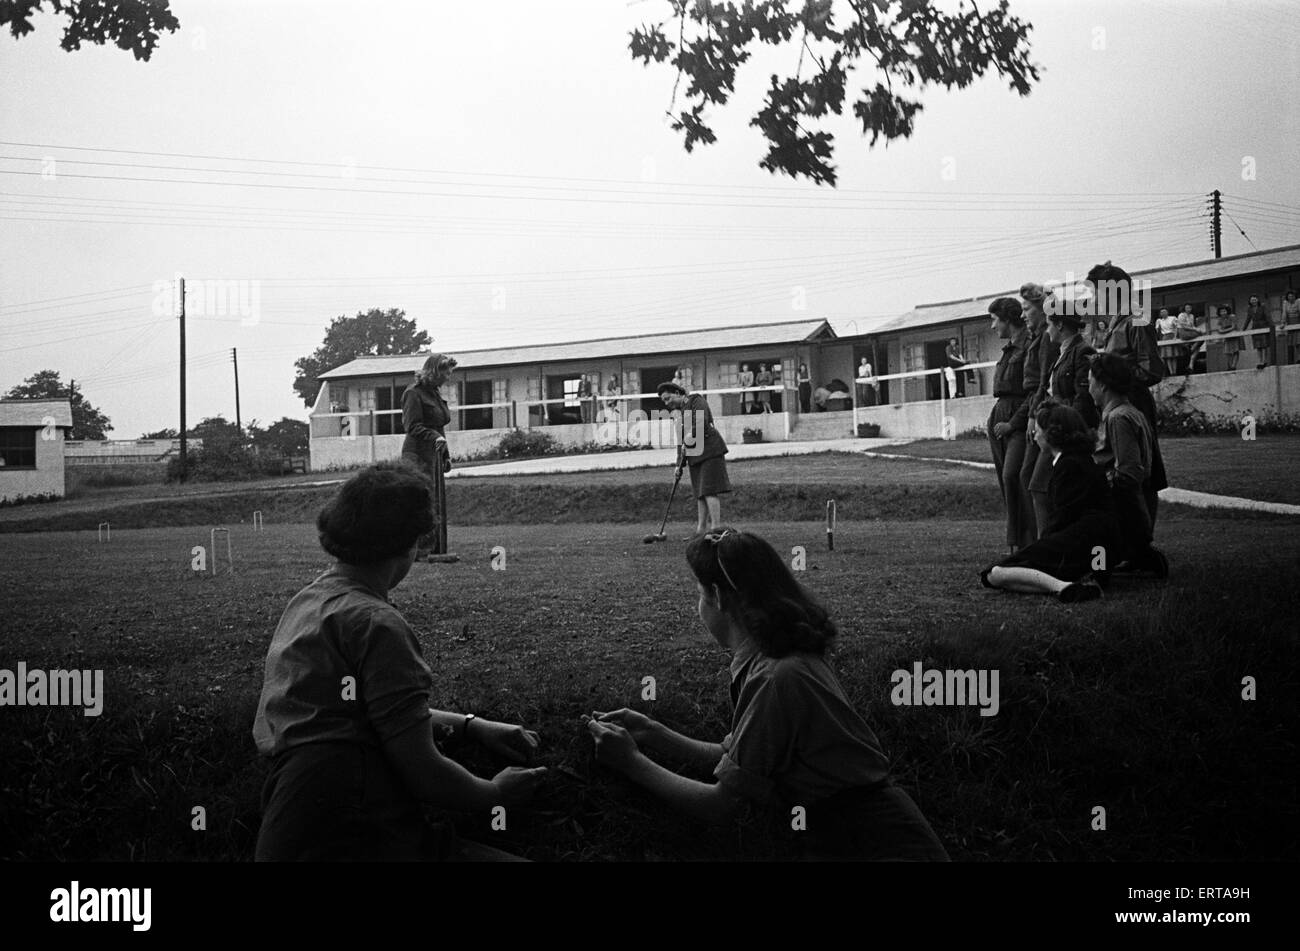 British Legion Sanatorium at Nayland, Suffolk. Circa 1946. - Stock Image